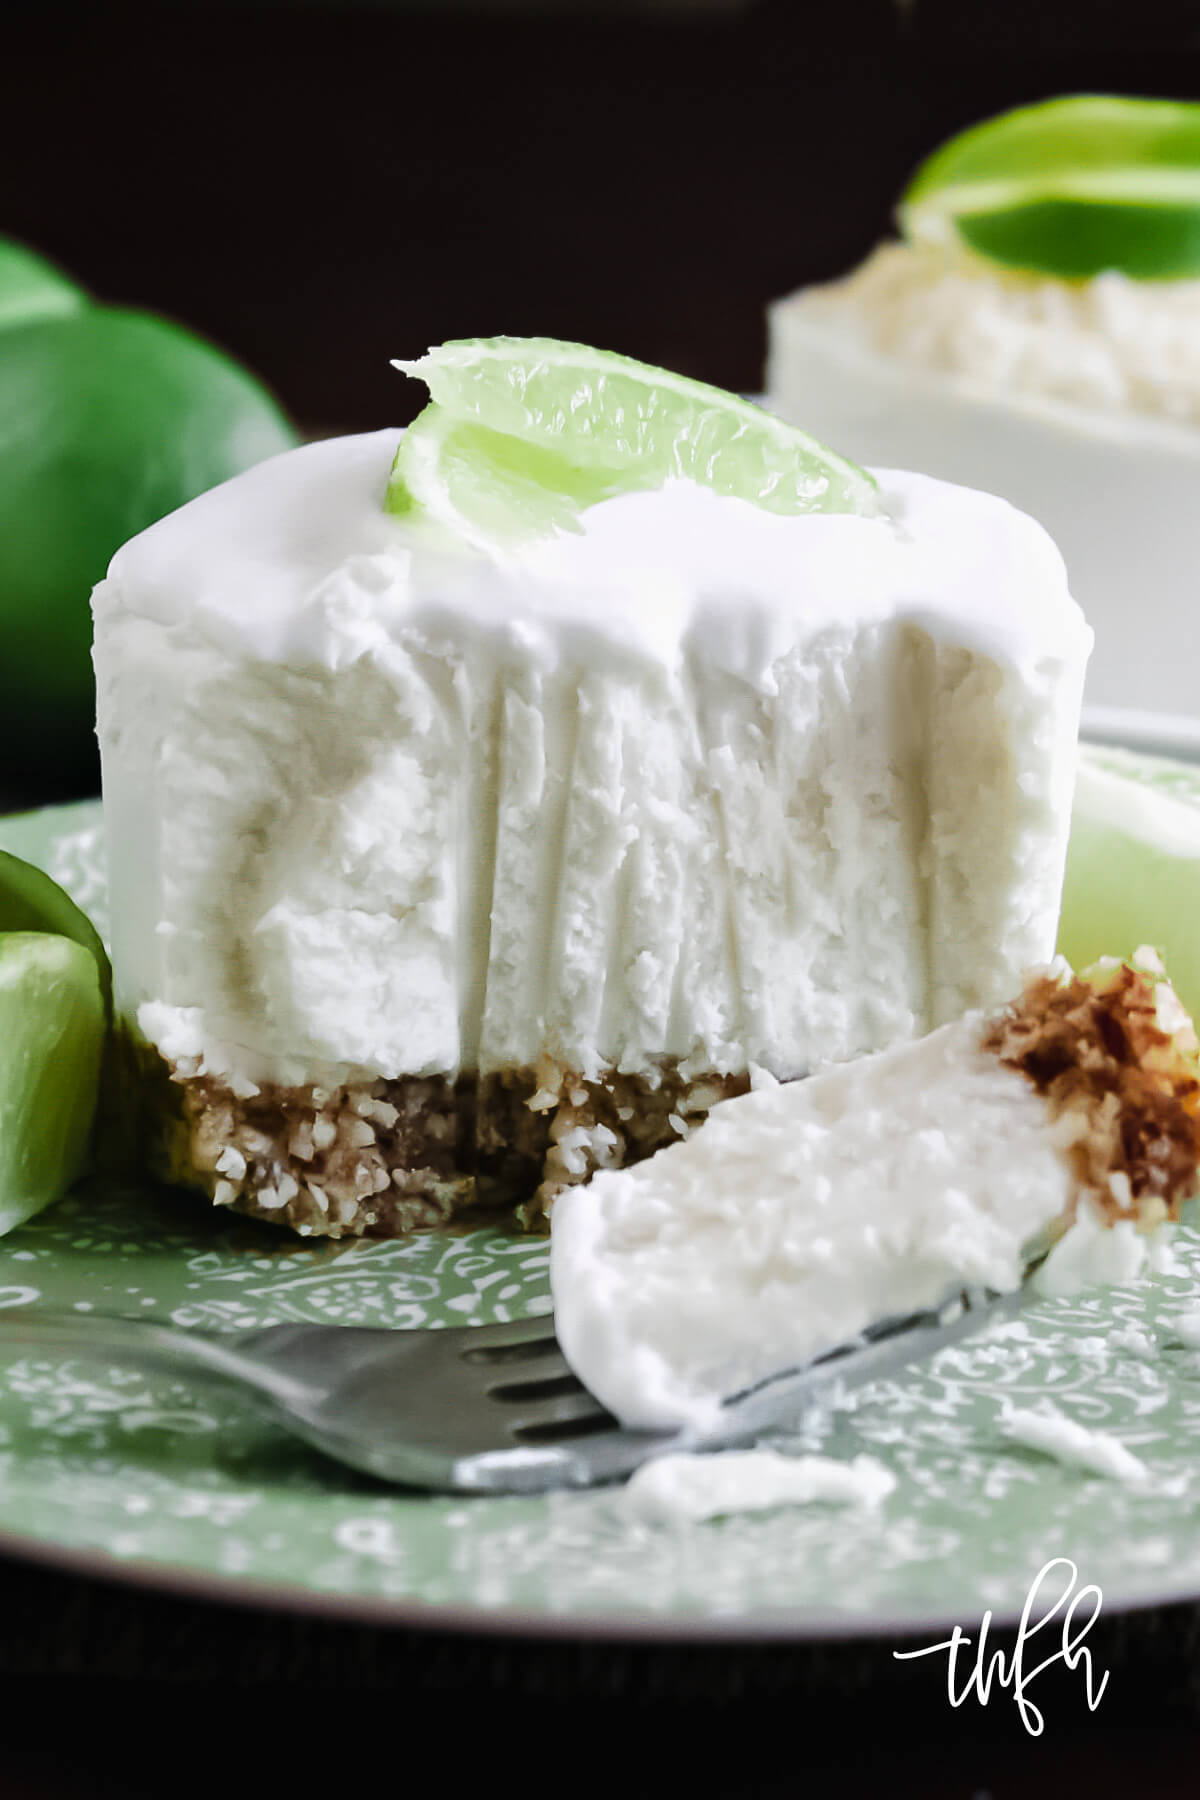 Vertical image of an individual key lime cheesecake with a fork bite taken out on a decorative green plate